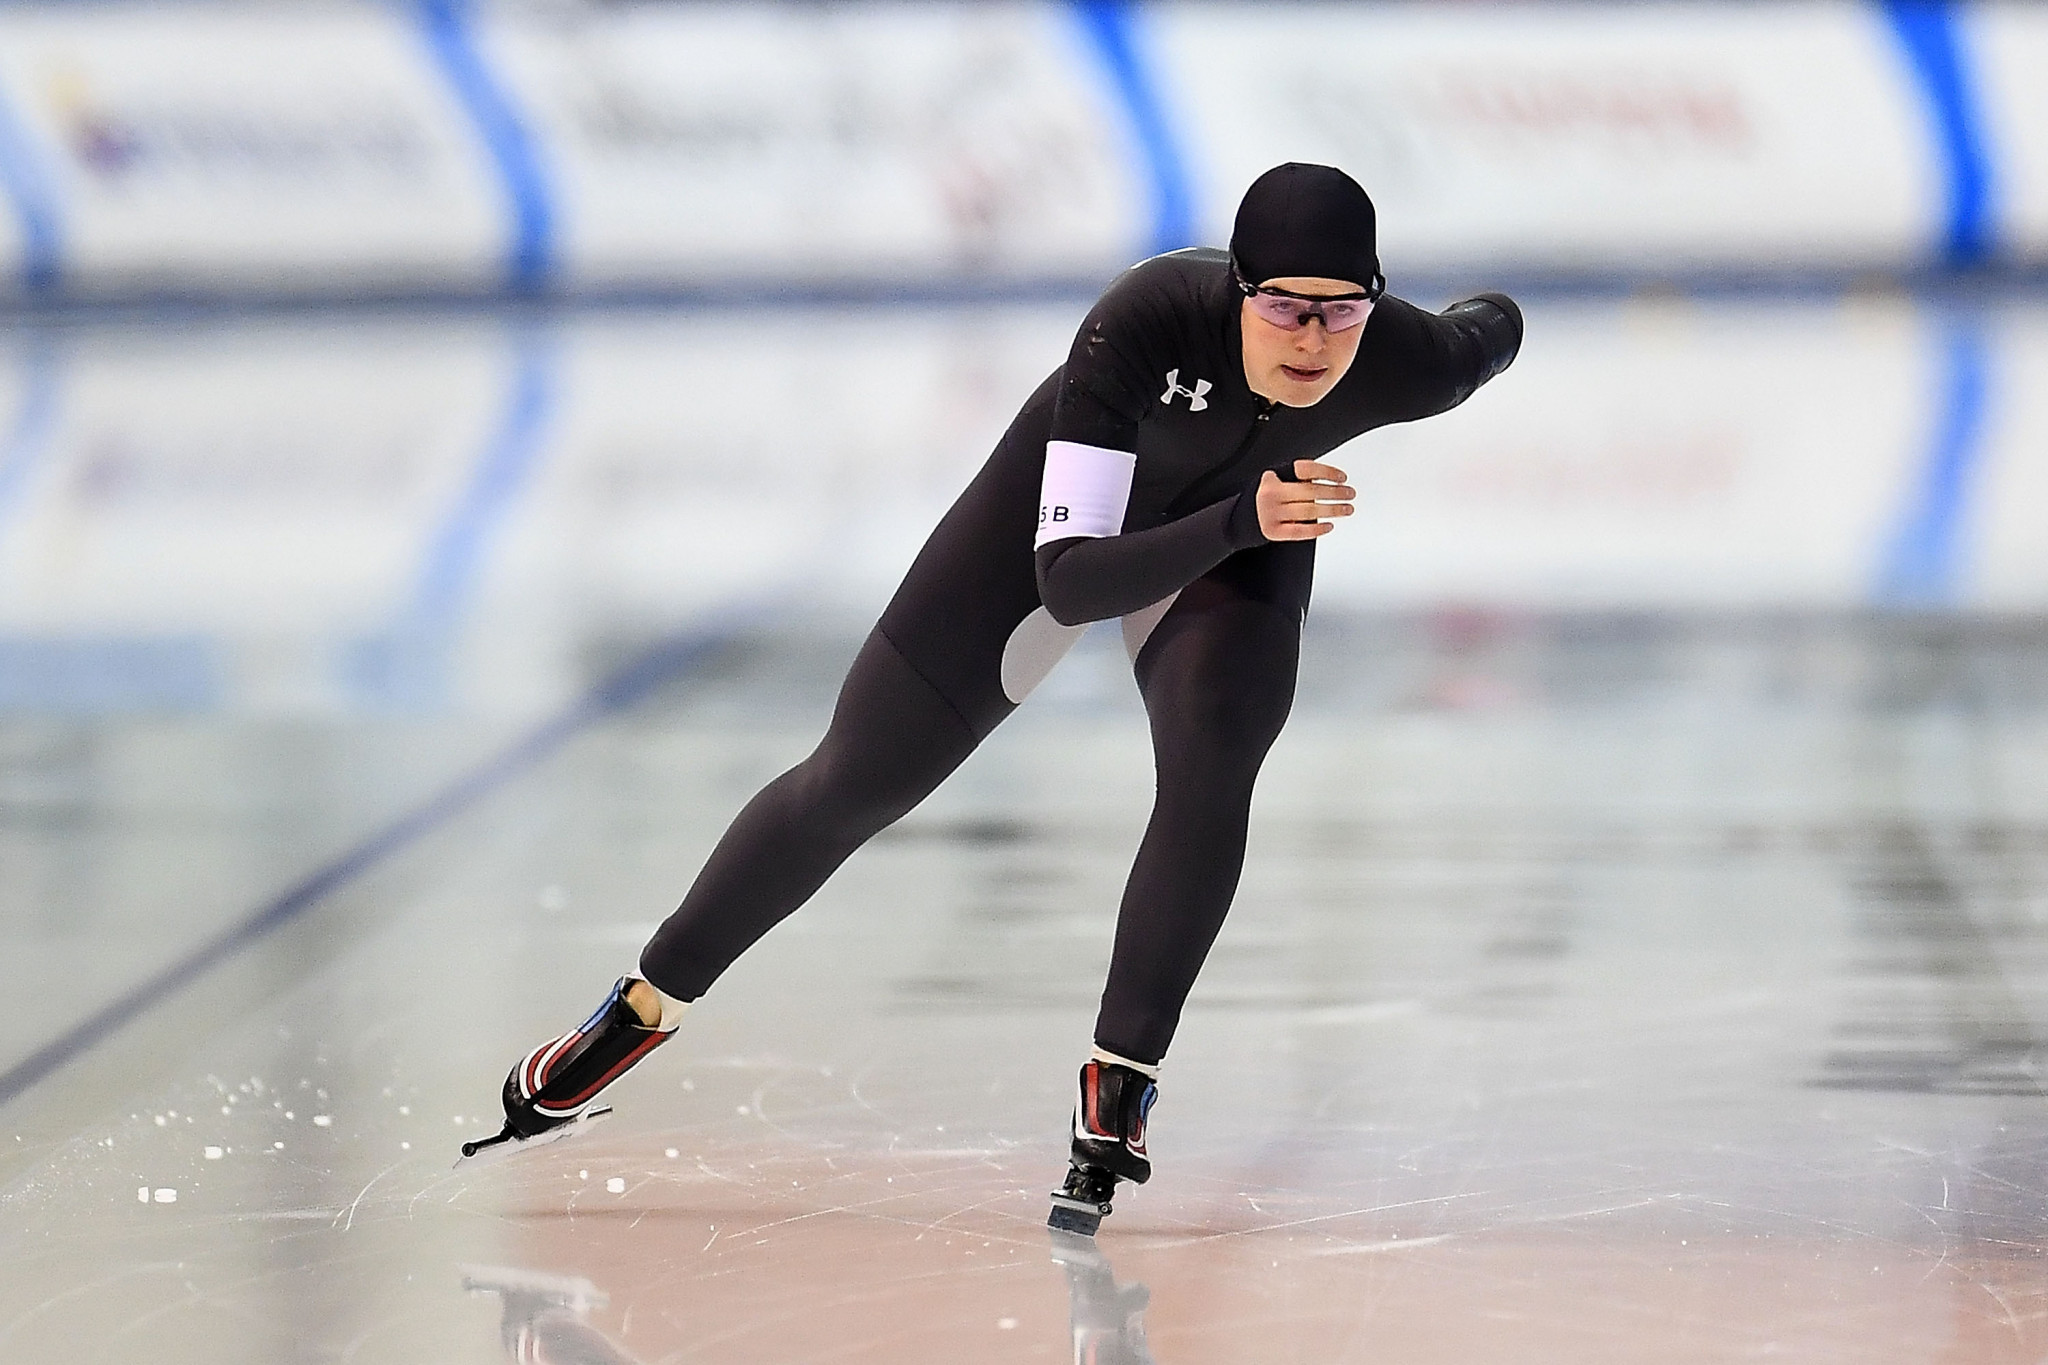 Speed skater Schoutens books place on American team for Pyeongchang 2018